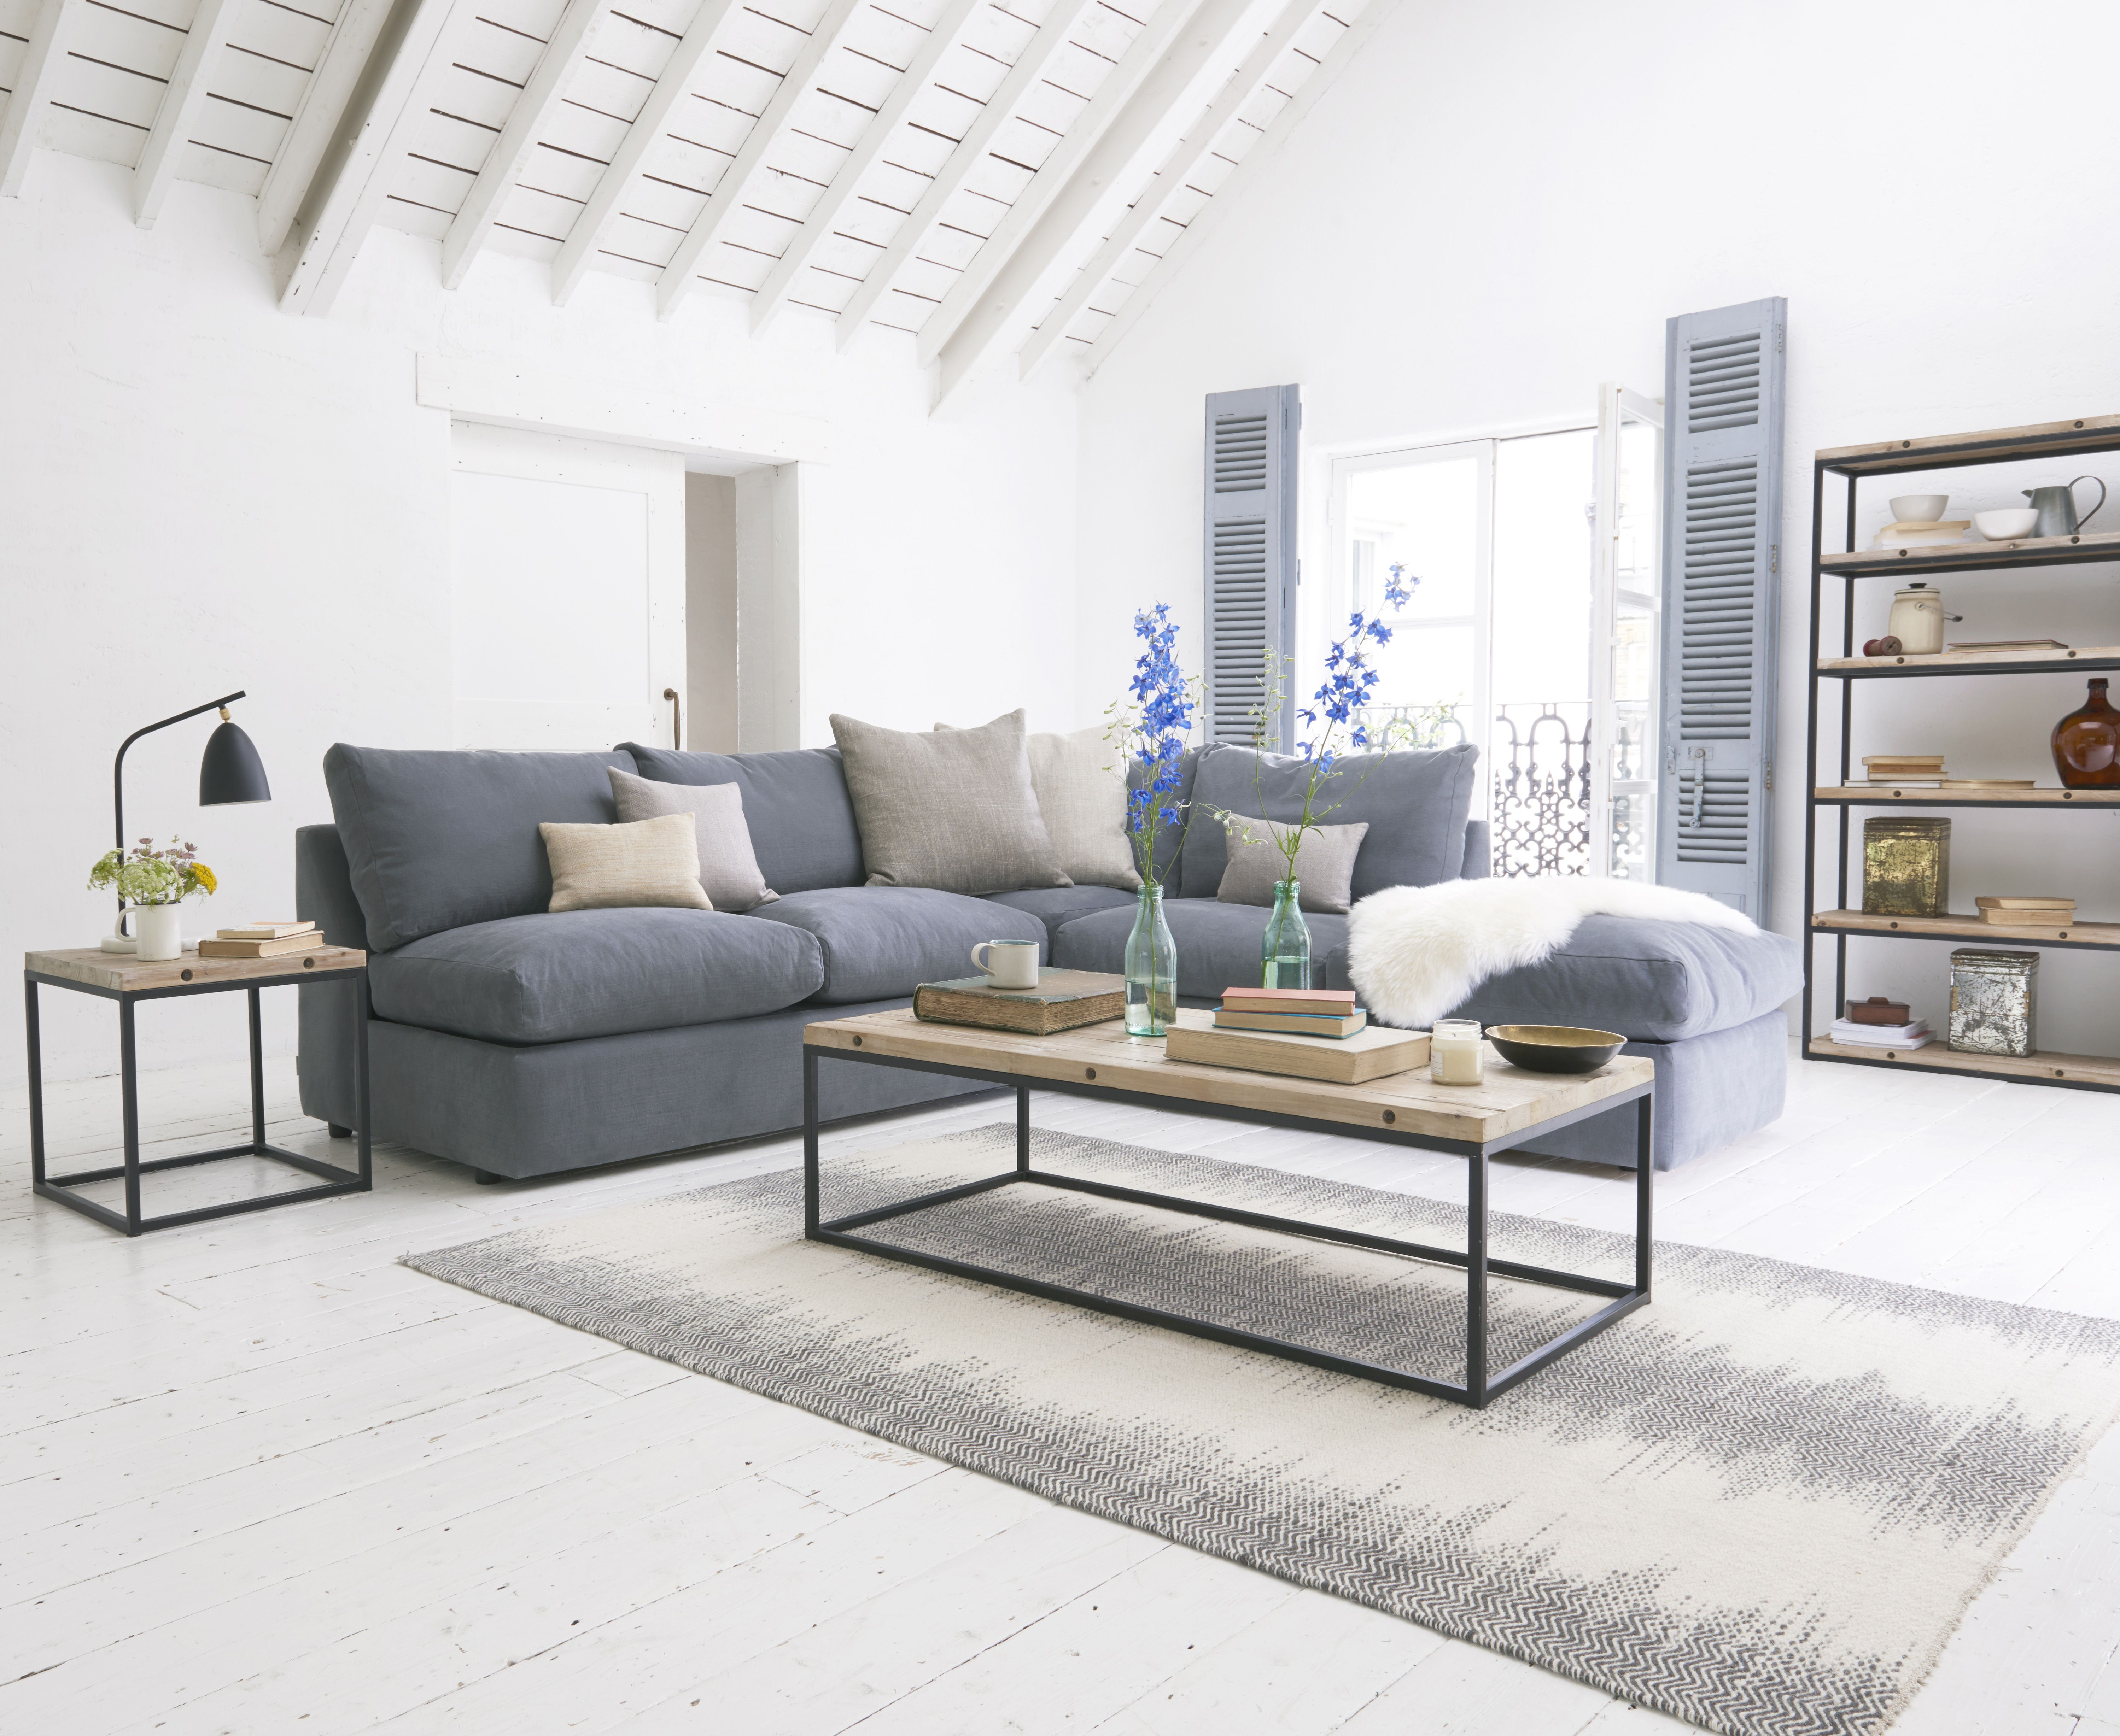 These are the best sofa beds for overnight guests